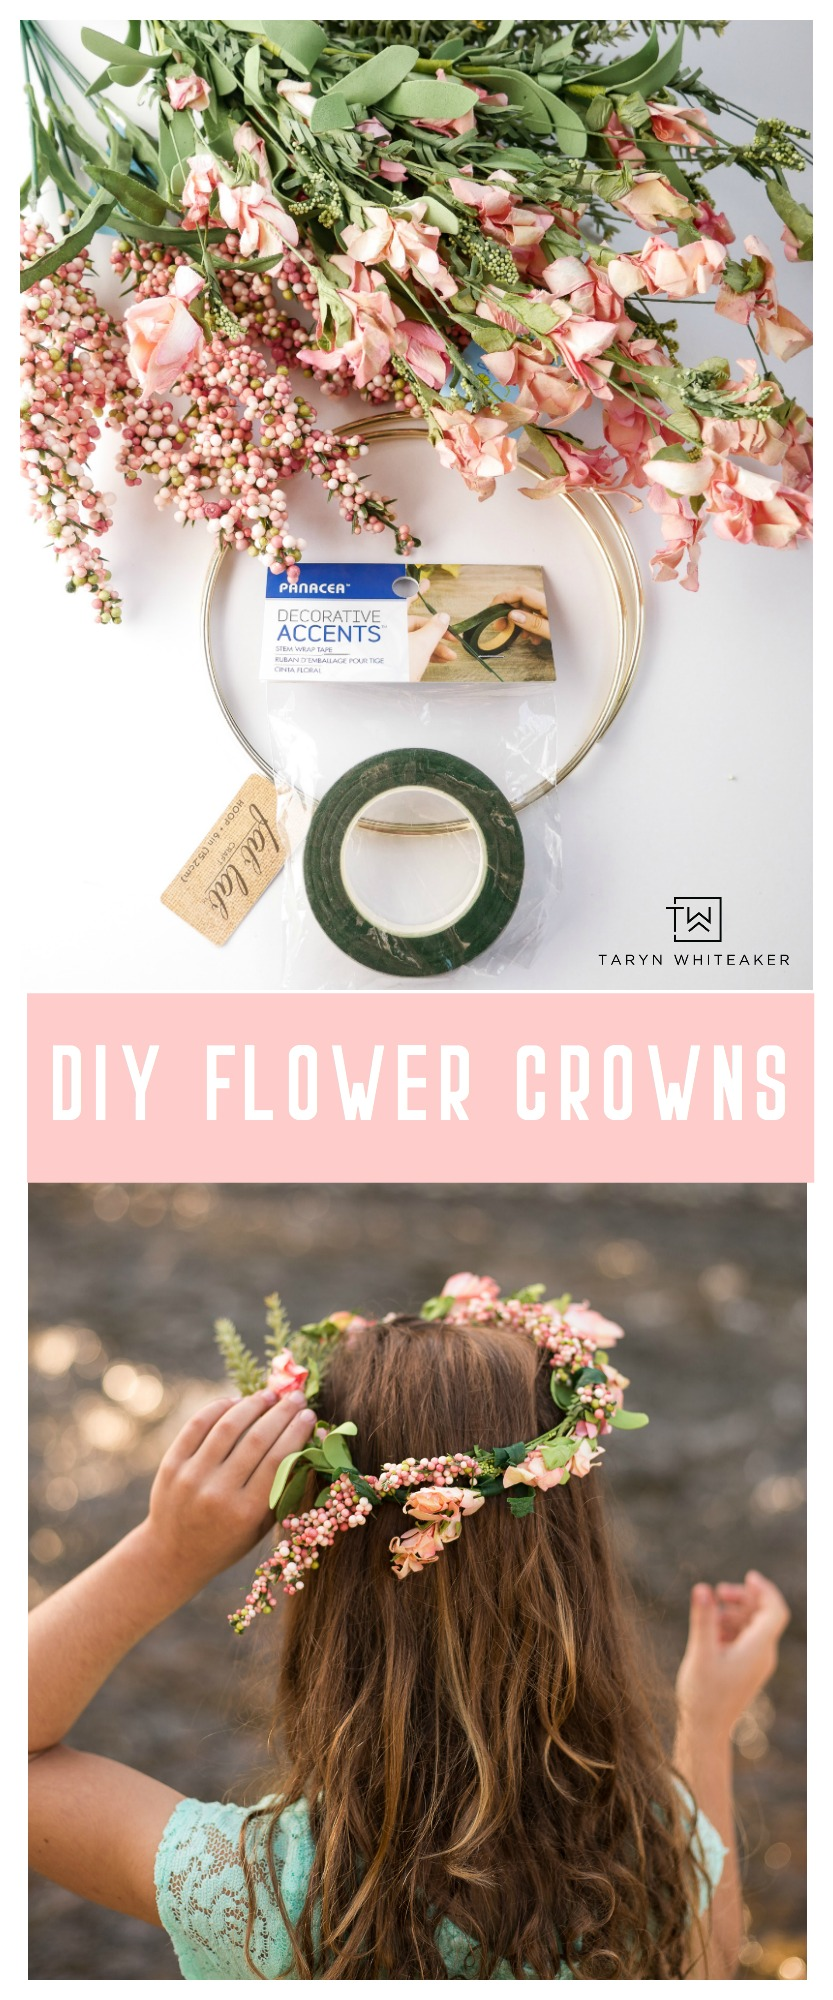 Learn how to make your own DIY Flower Crowns for your next party or adventure! This simple craft can be made in a few minutes!